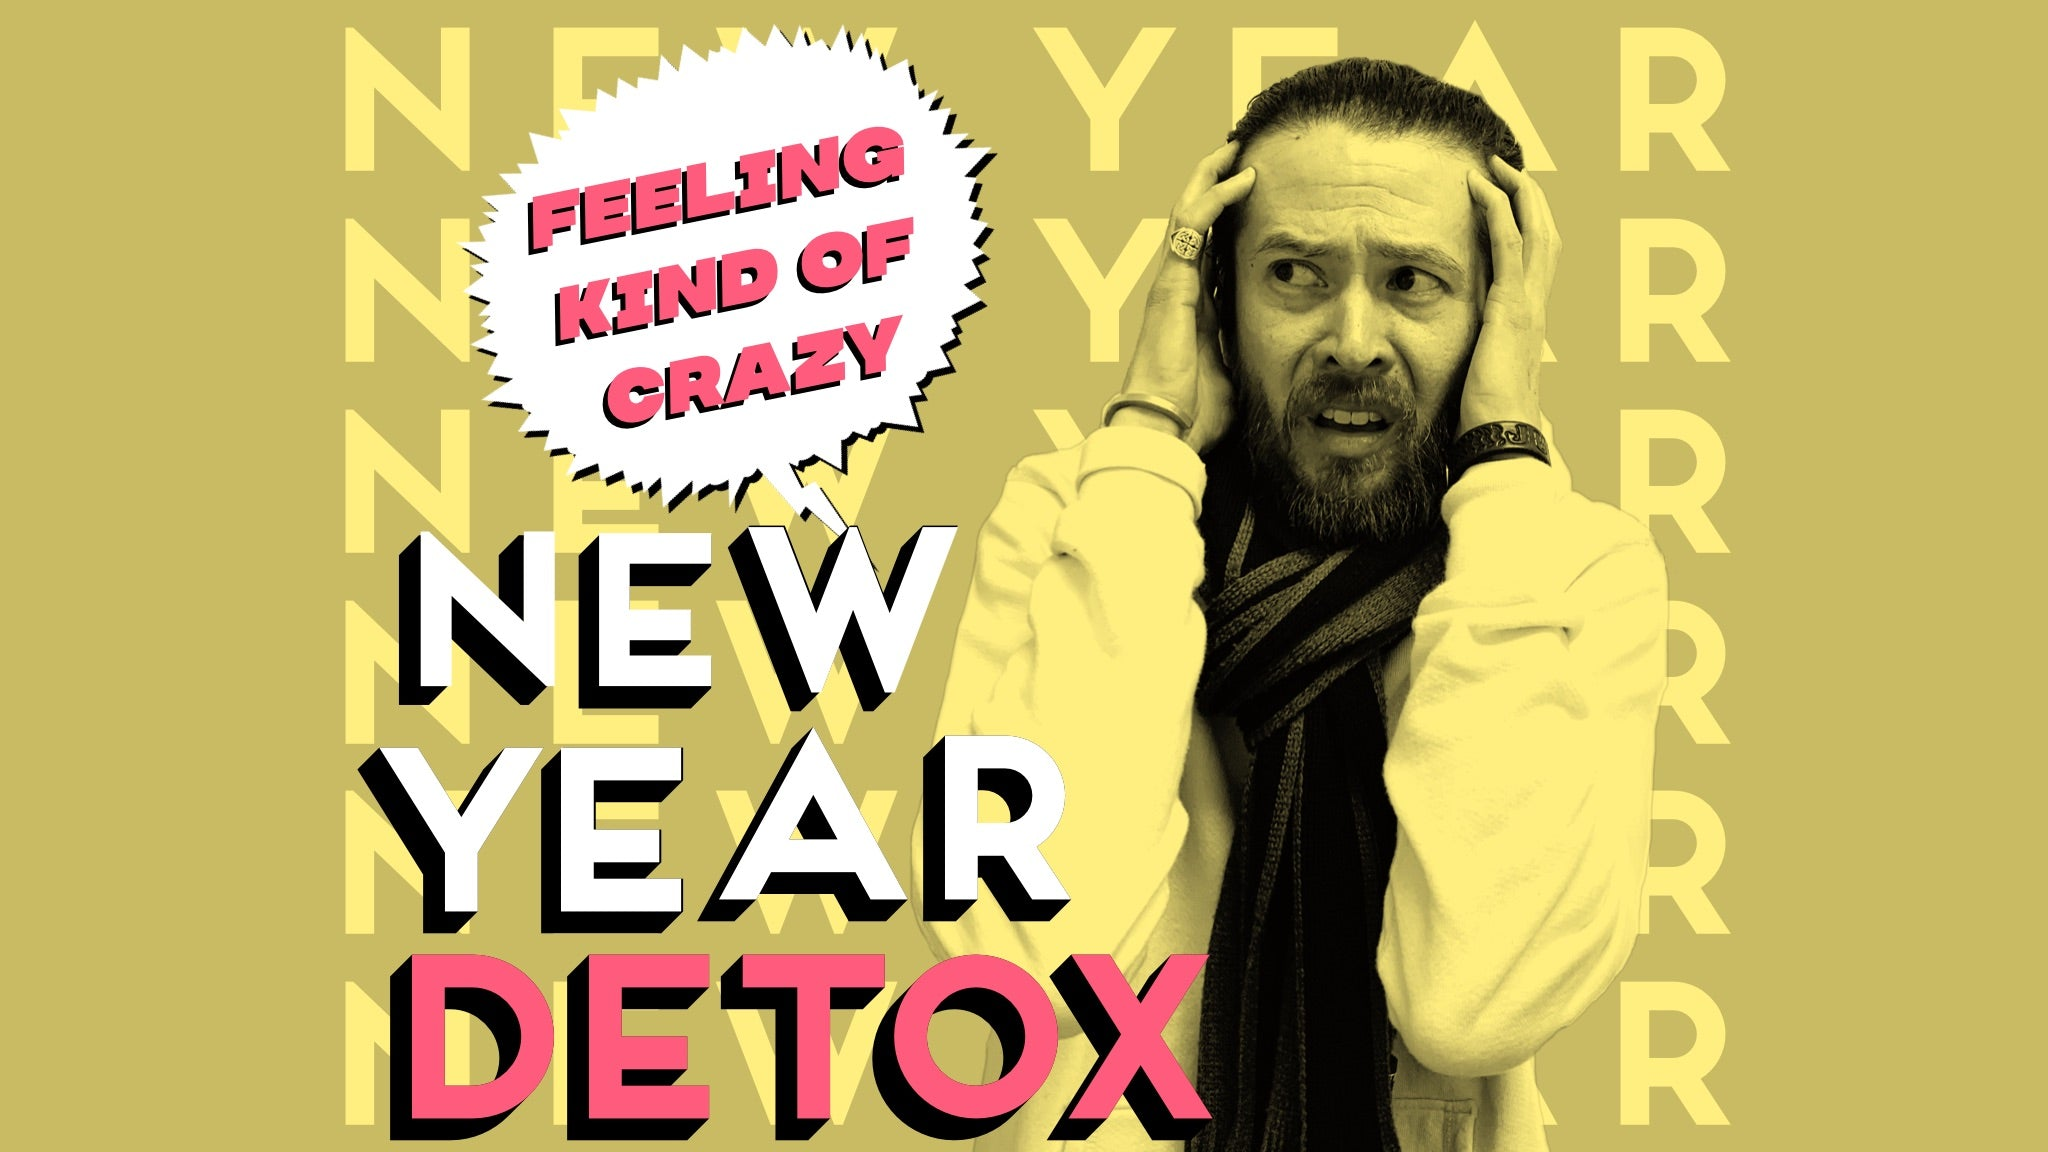 Doctor Motley - New Year Detox